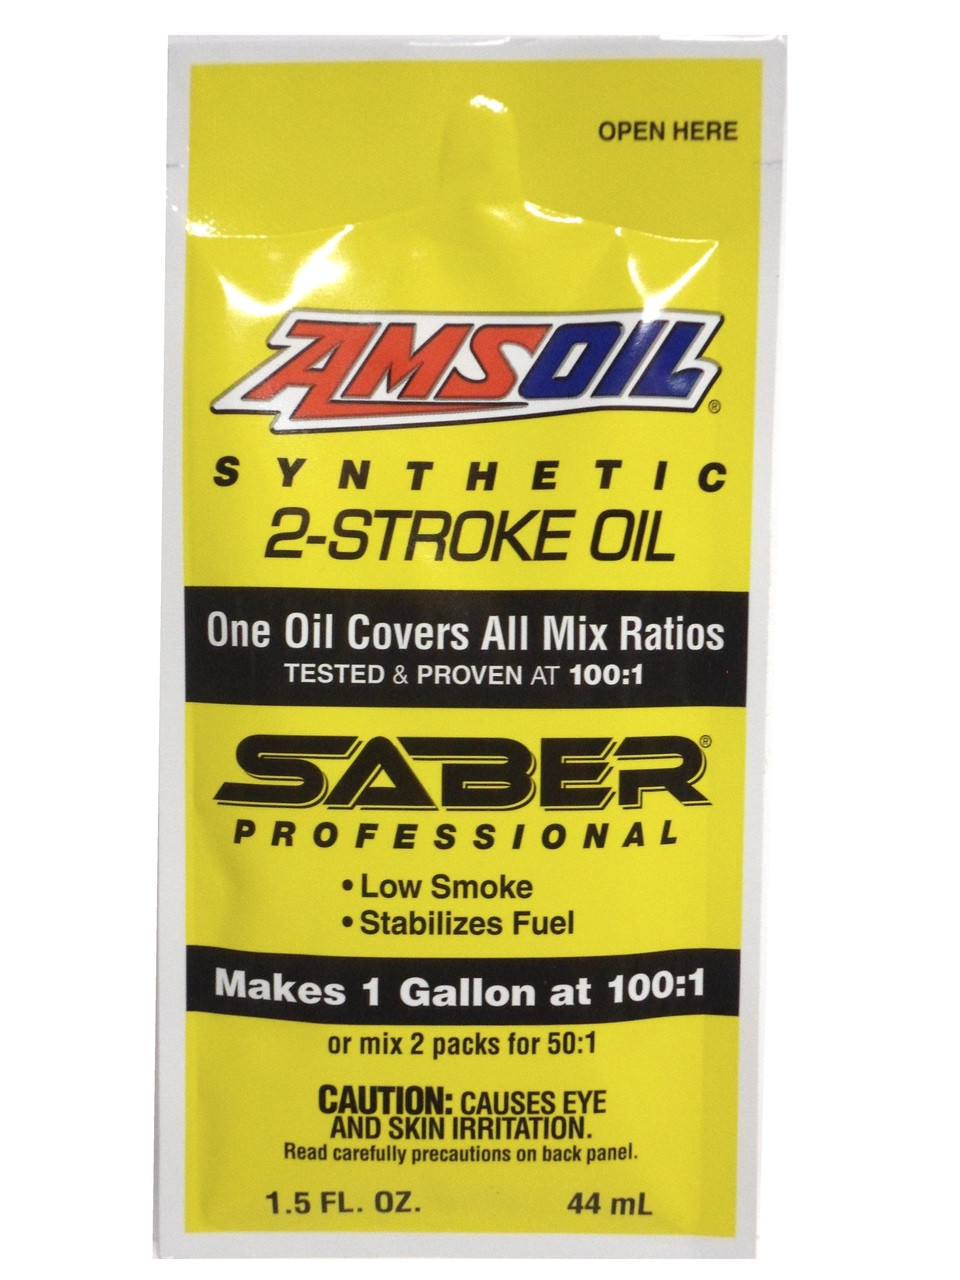 Amsoil Saber Professional Synthetic 2-Stroke Mixing Oil - 1.5 FL Ounce